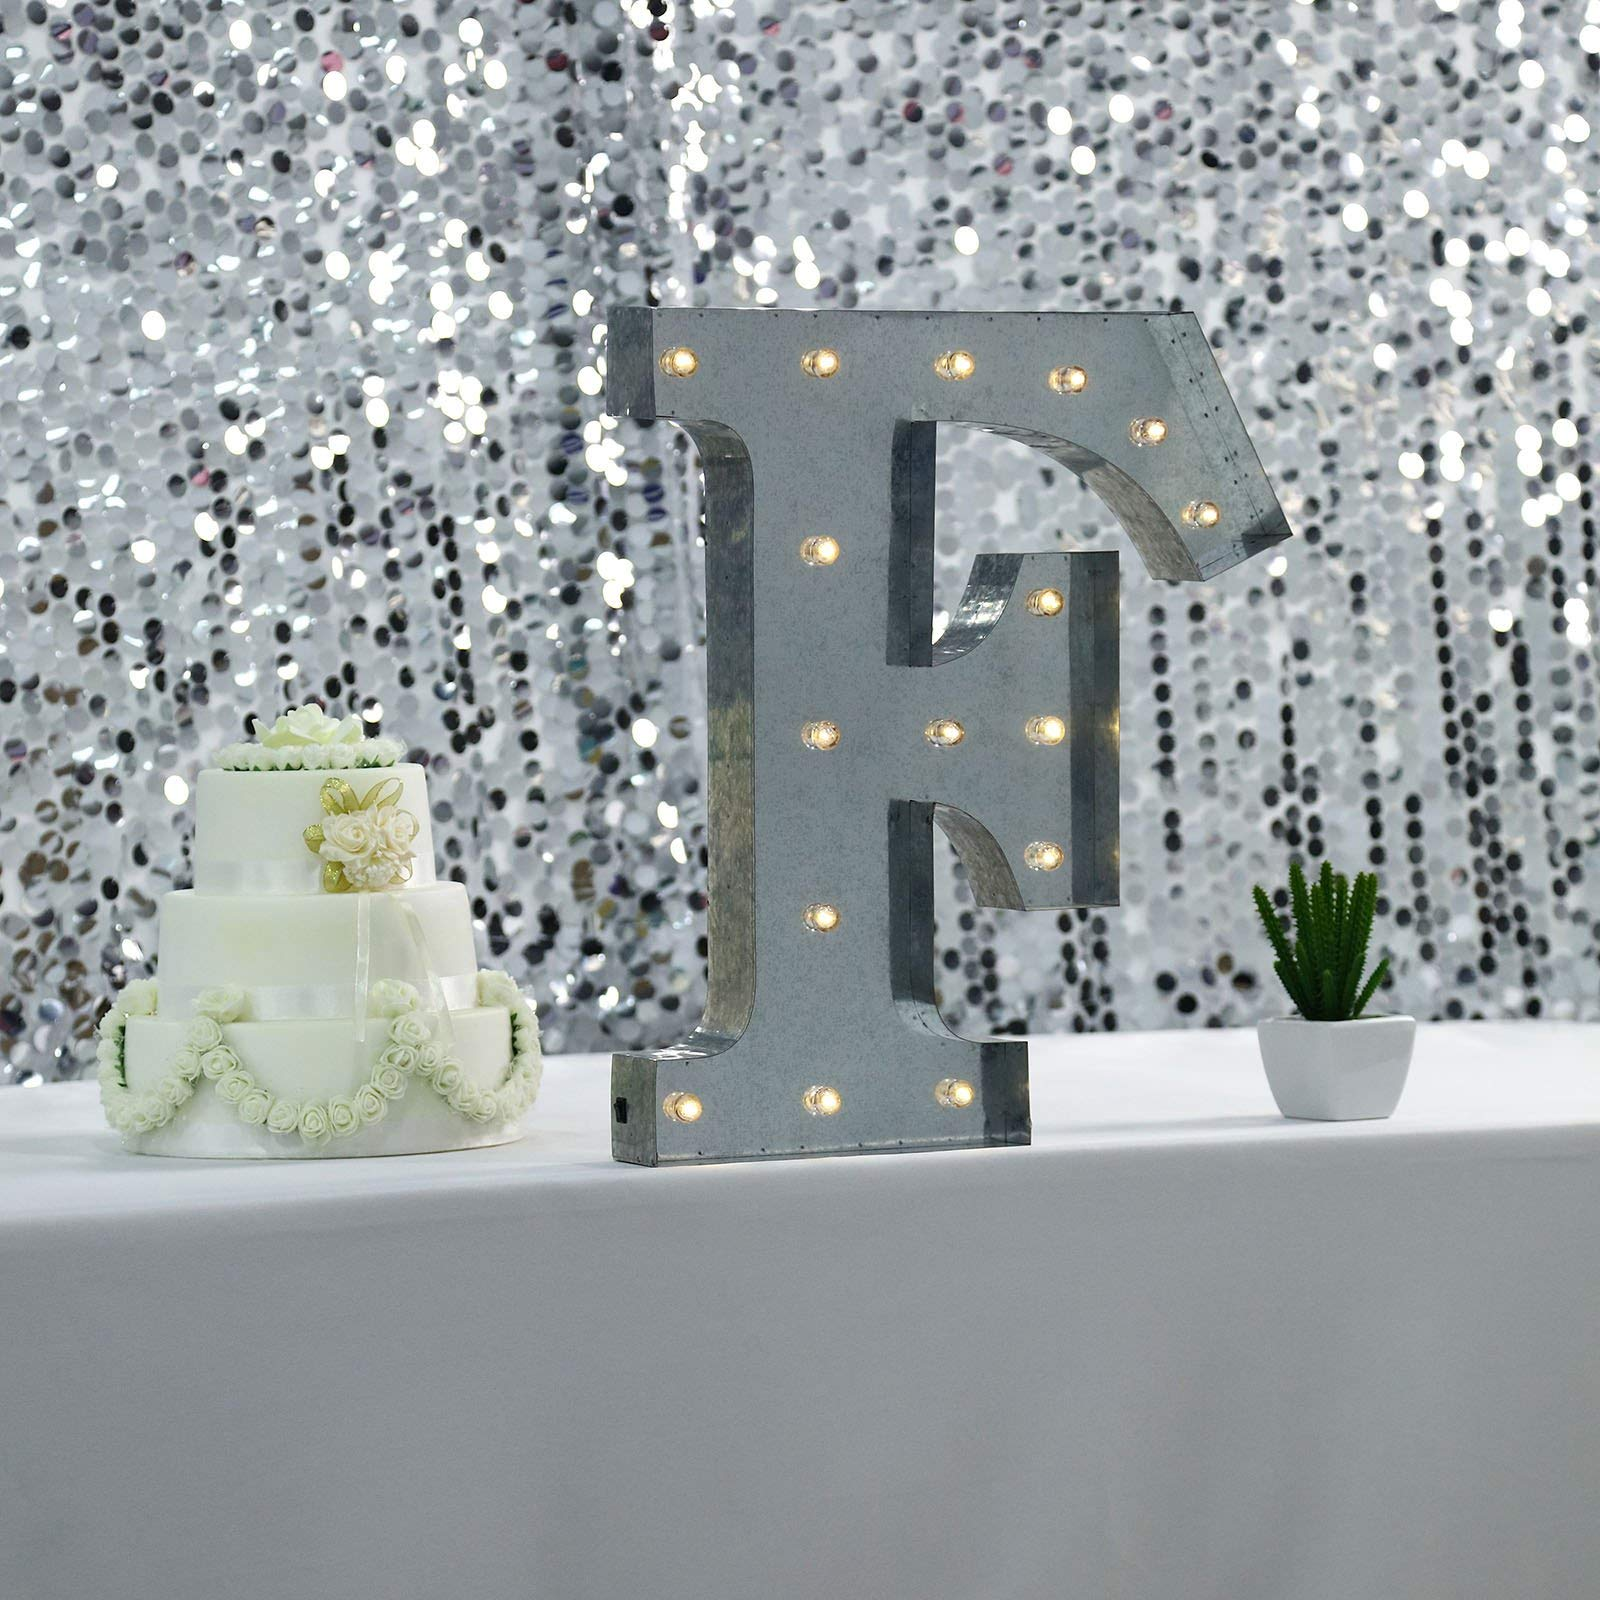 Tableclothsfactory 2 FT | Vintage Metal Marquee Letter Lights Cordless with 16 Warm White LED - F by Tableclothsfactory